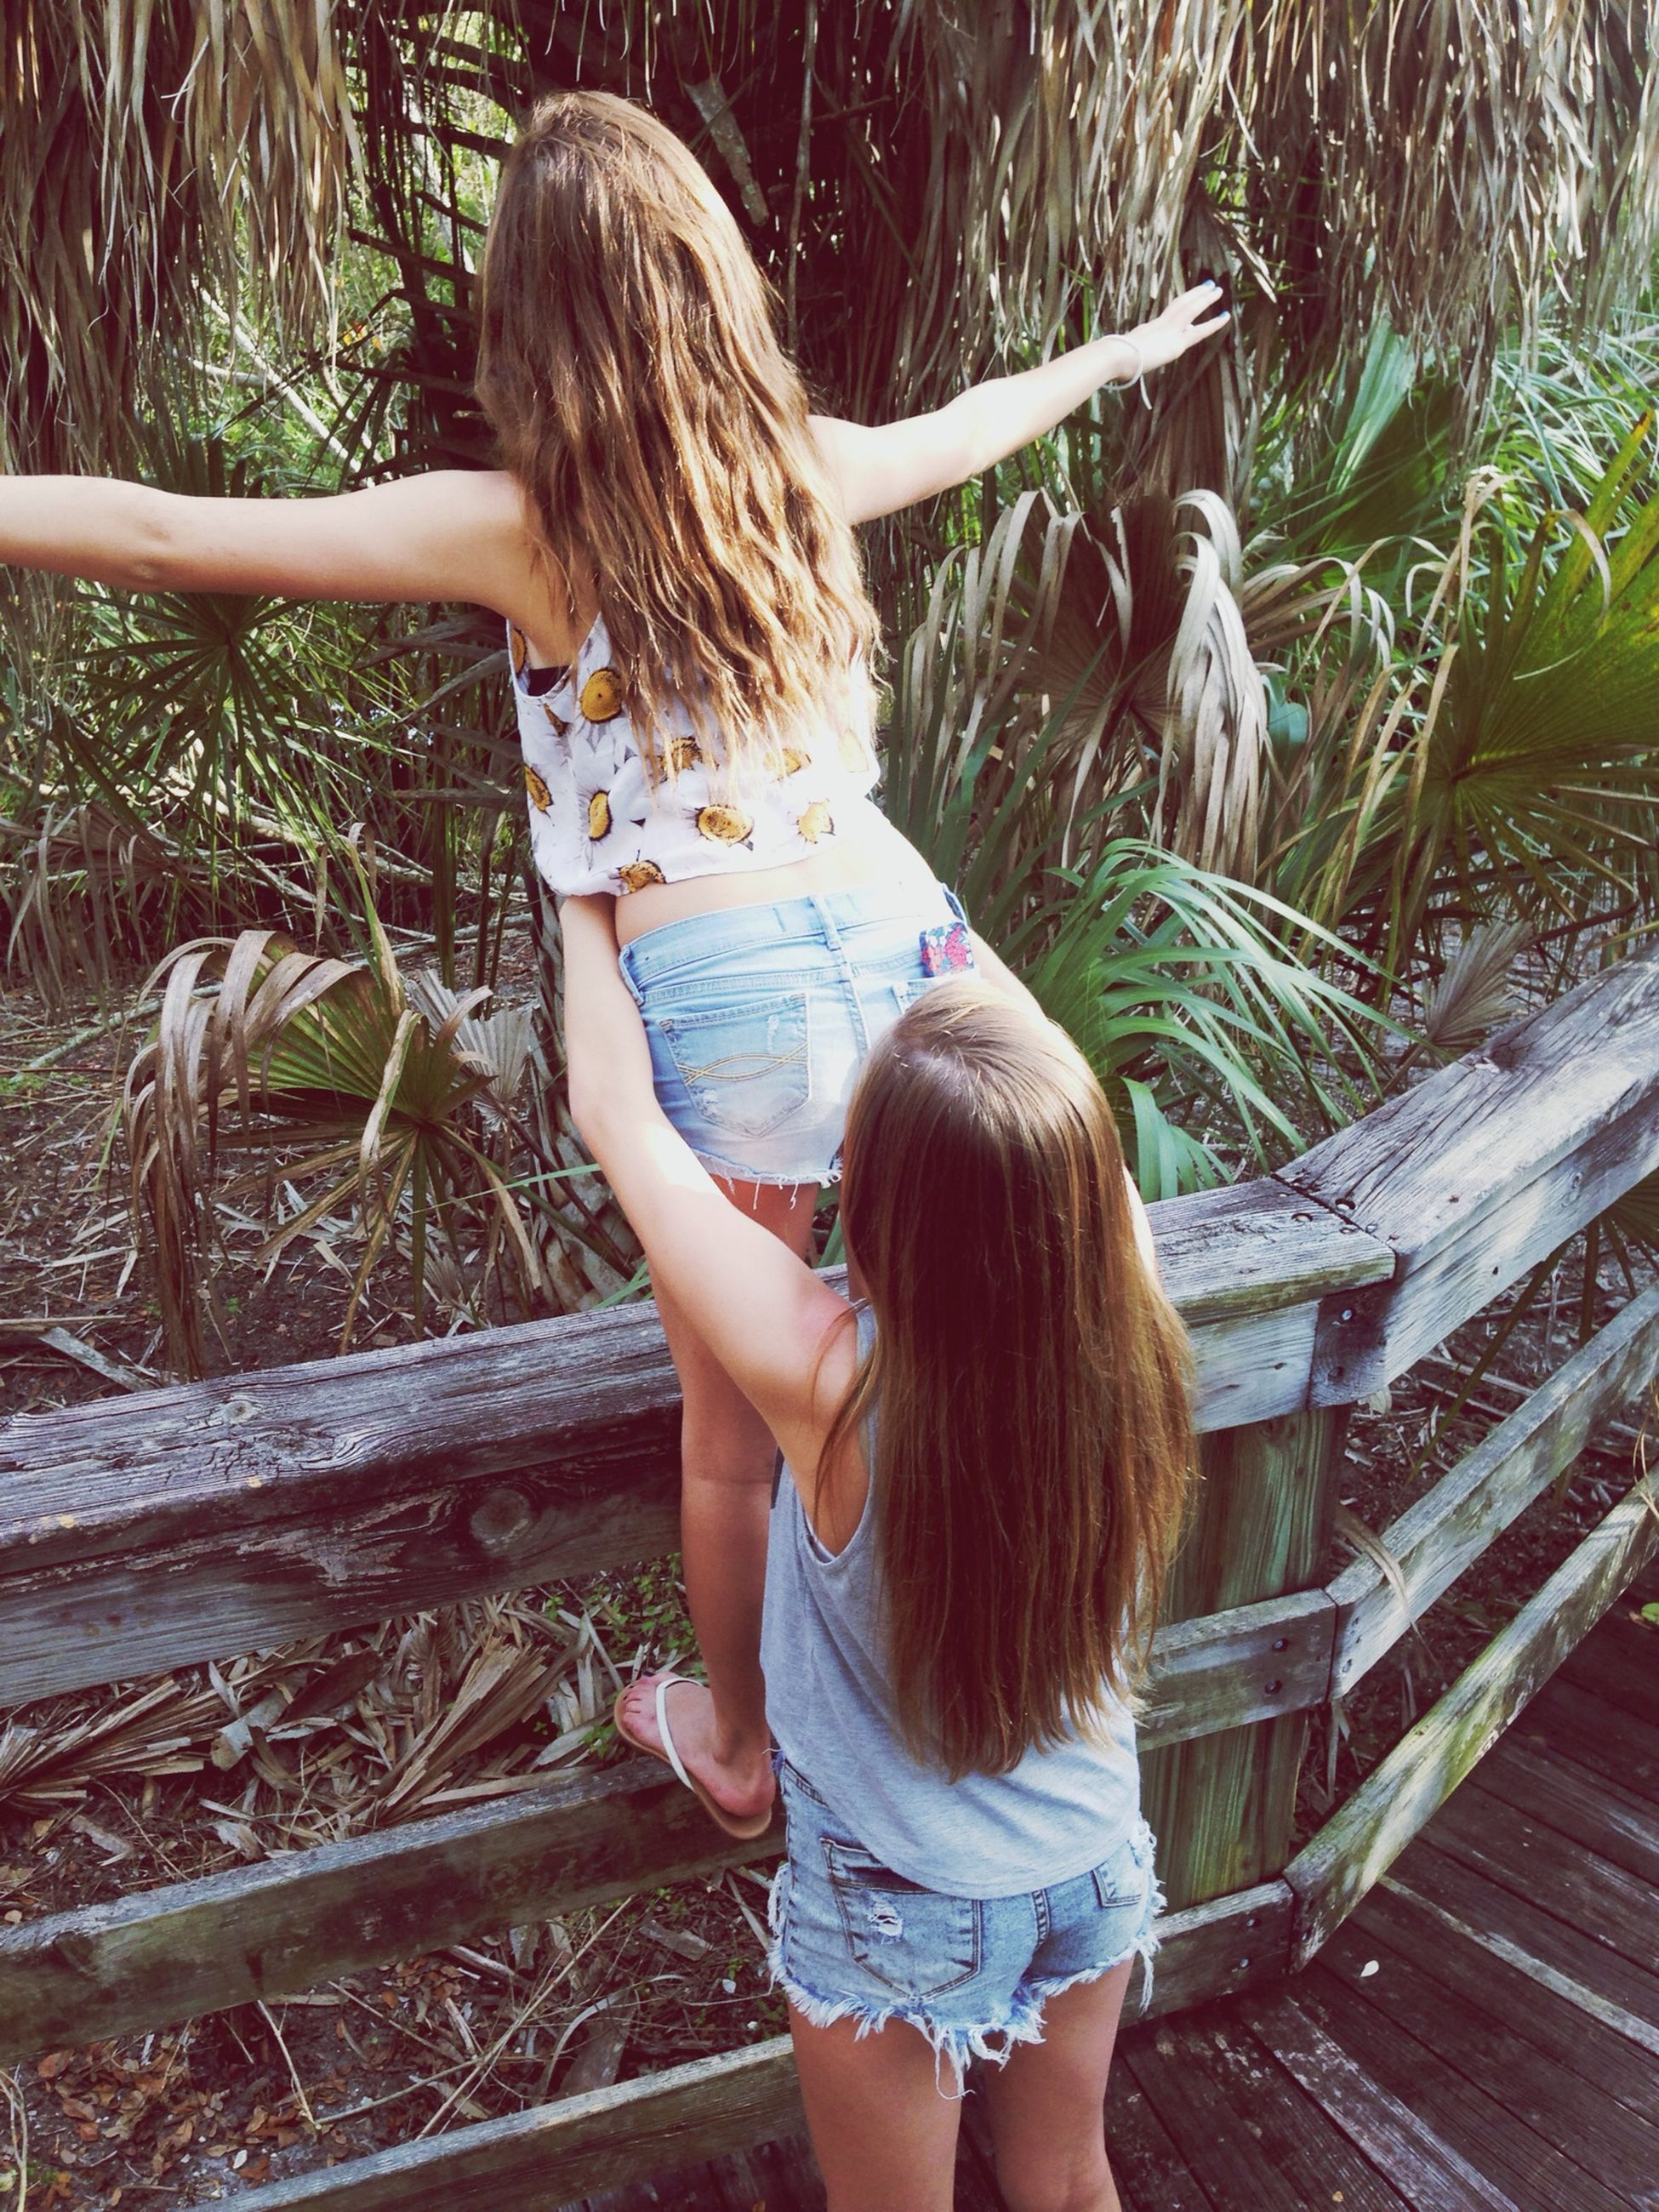 lifestyles, leisure activity, childhood, girls, elementary age, long hair, rear view, casual clothing, standing, full length, blond hair, person, three quarter length, young women, tree, railing, innocence